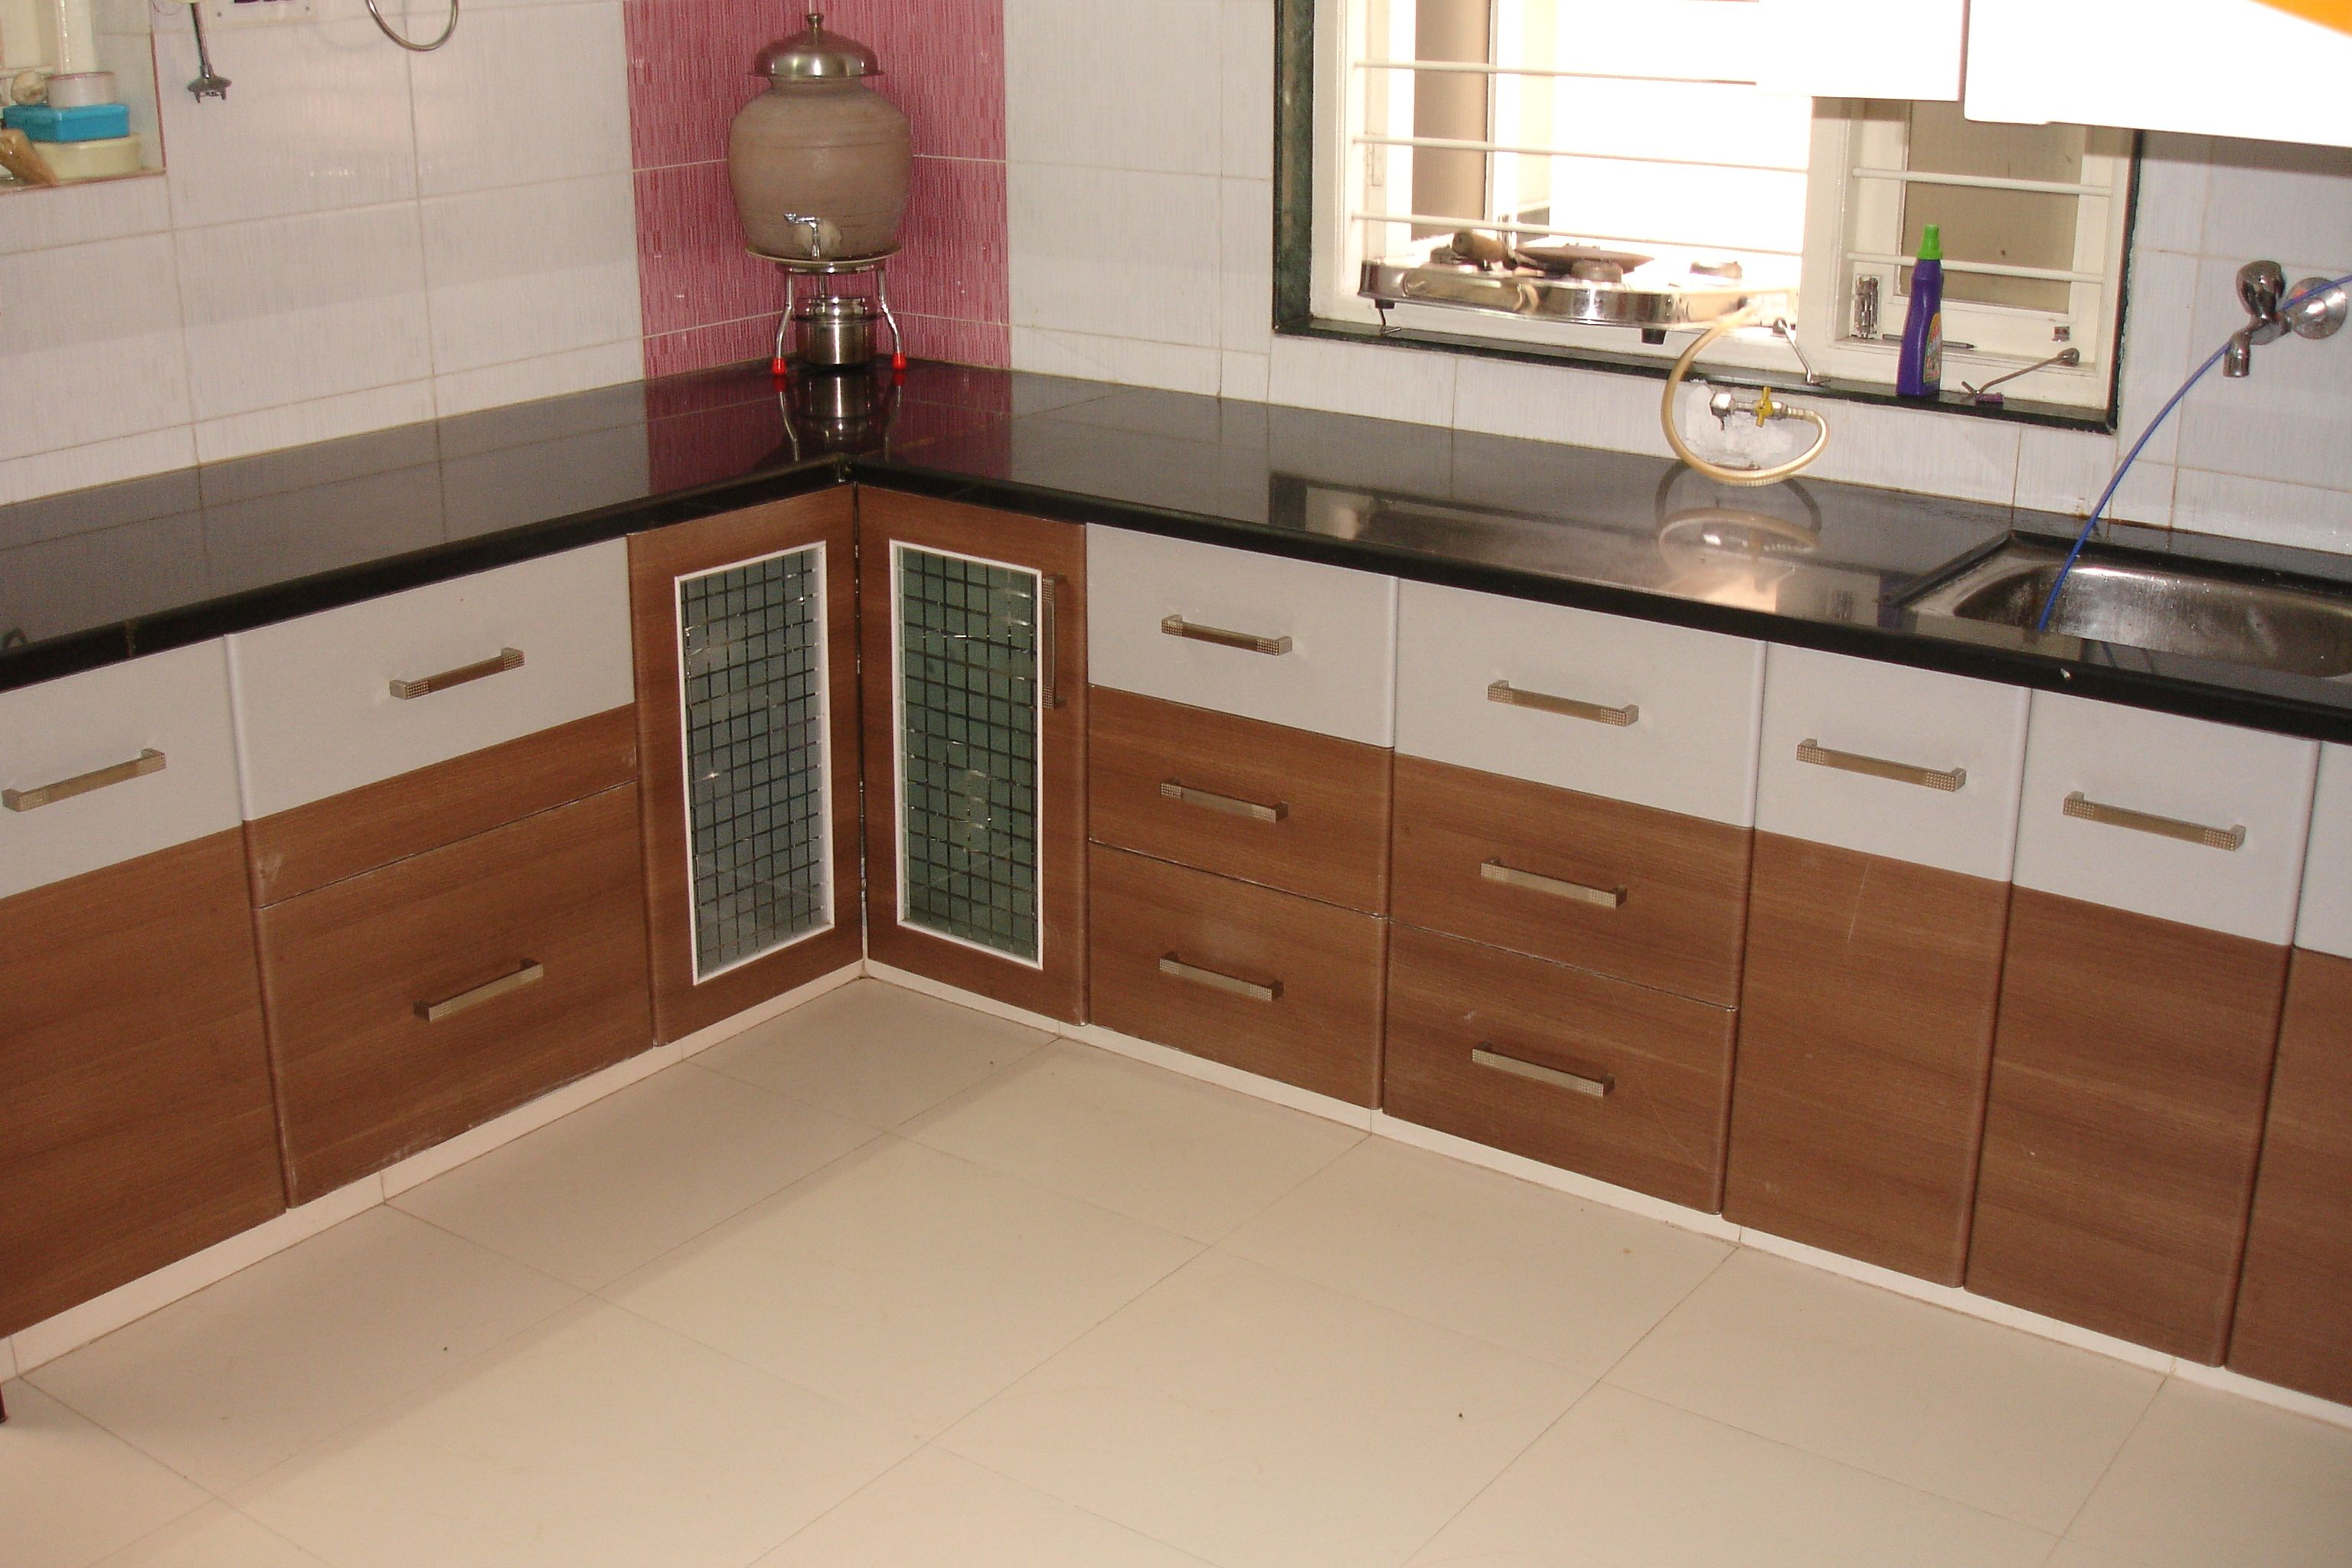 Kitchen Design Brands Magnificent Modular Kitchen From Rawat Furniture  Rawat's Moduclar Kitchens Decorating Inspiration